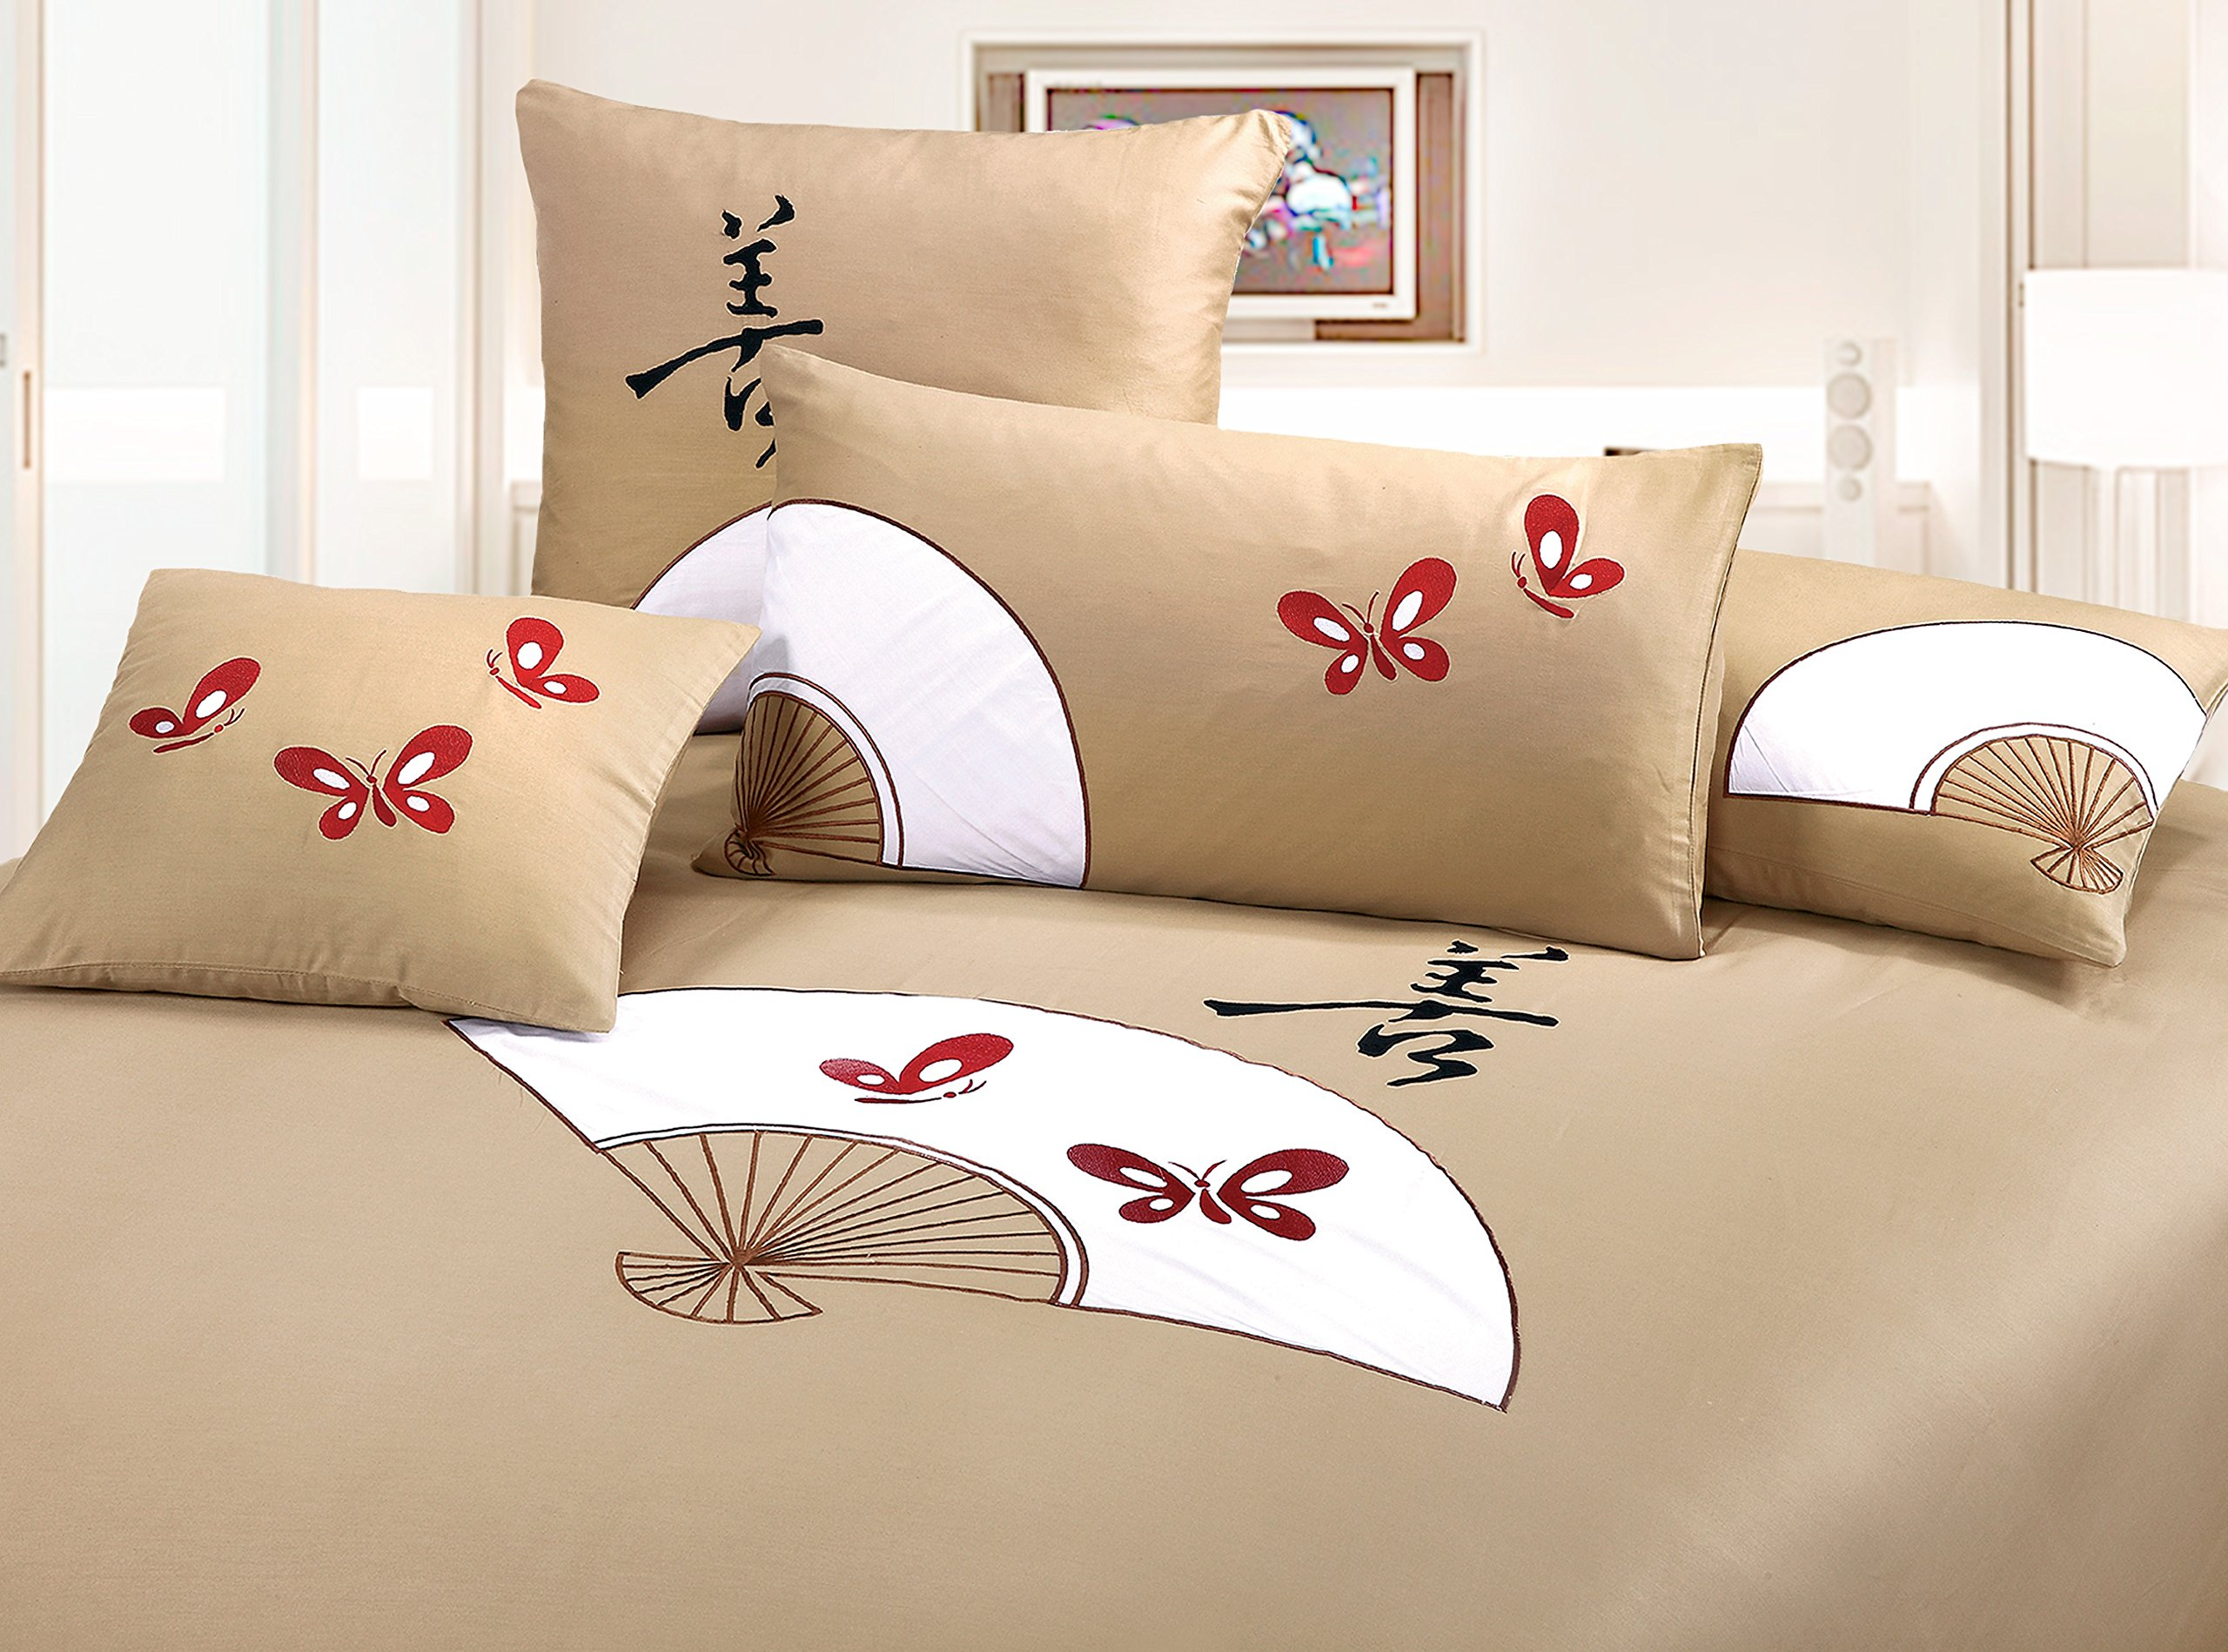 King silk tan 3 piece Duvet Cover Set, coverlet comforter 106''x92'', 2 Pillows 36''x26''. Asian inspired fashionable decorative design featuring red butterflies and fans graphic by Orient Sense